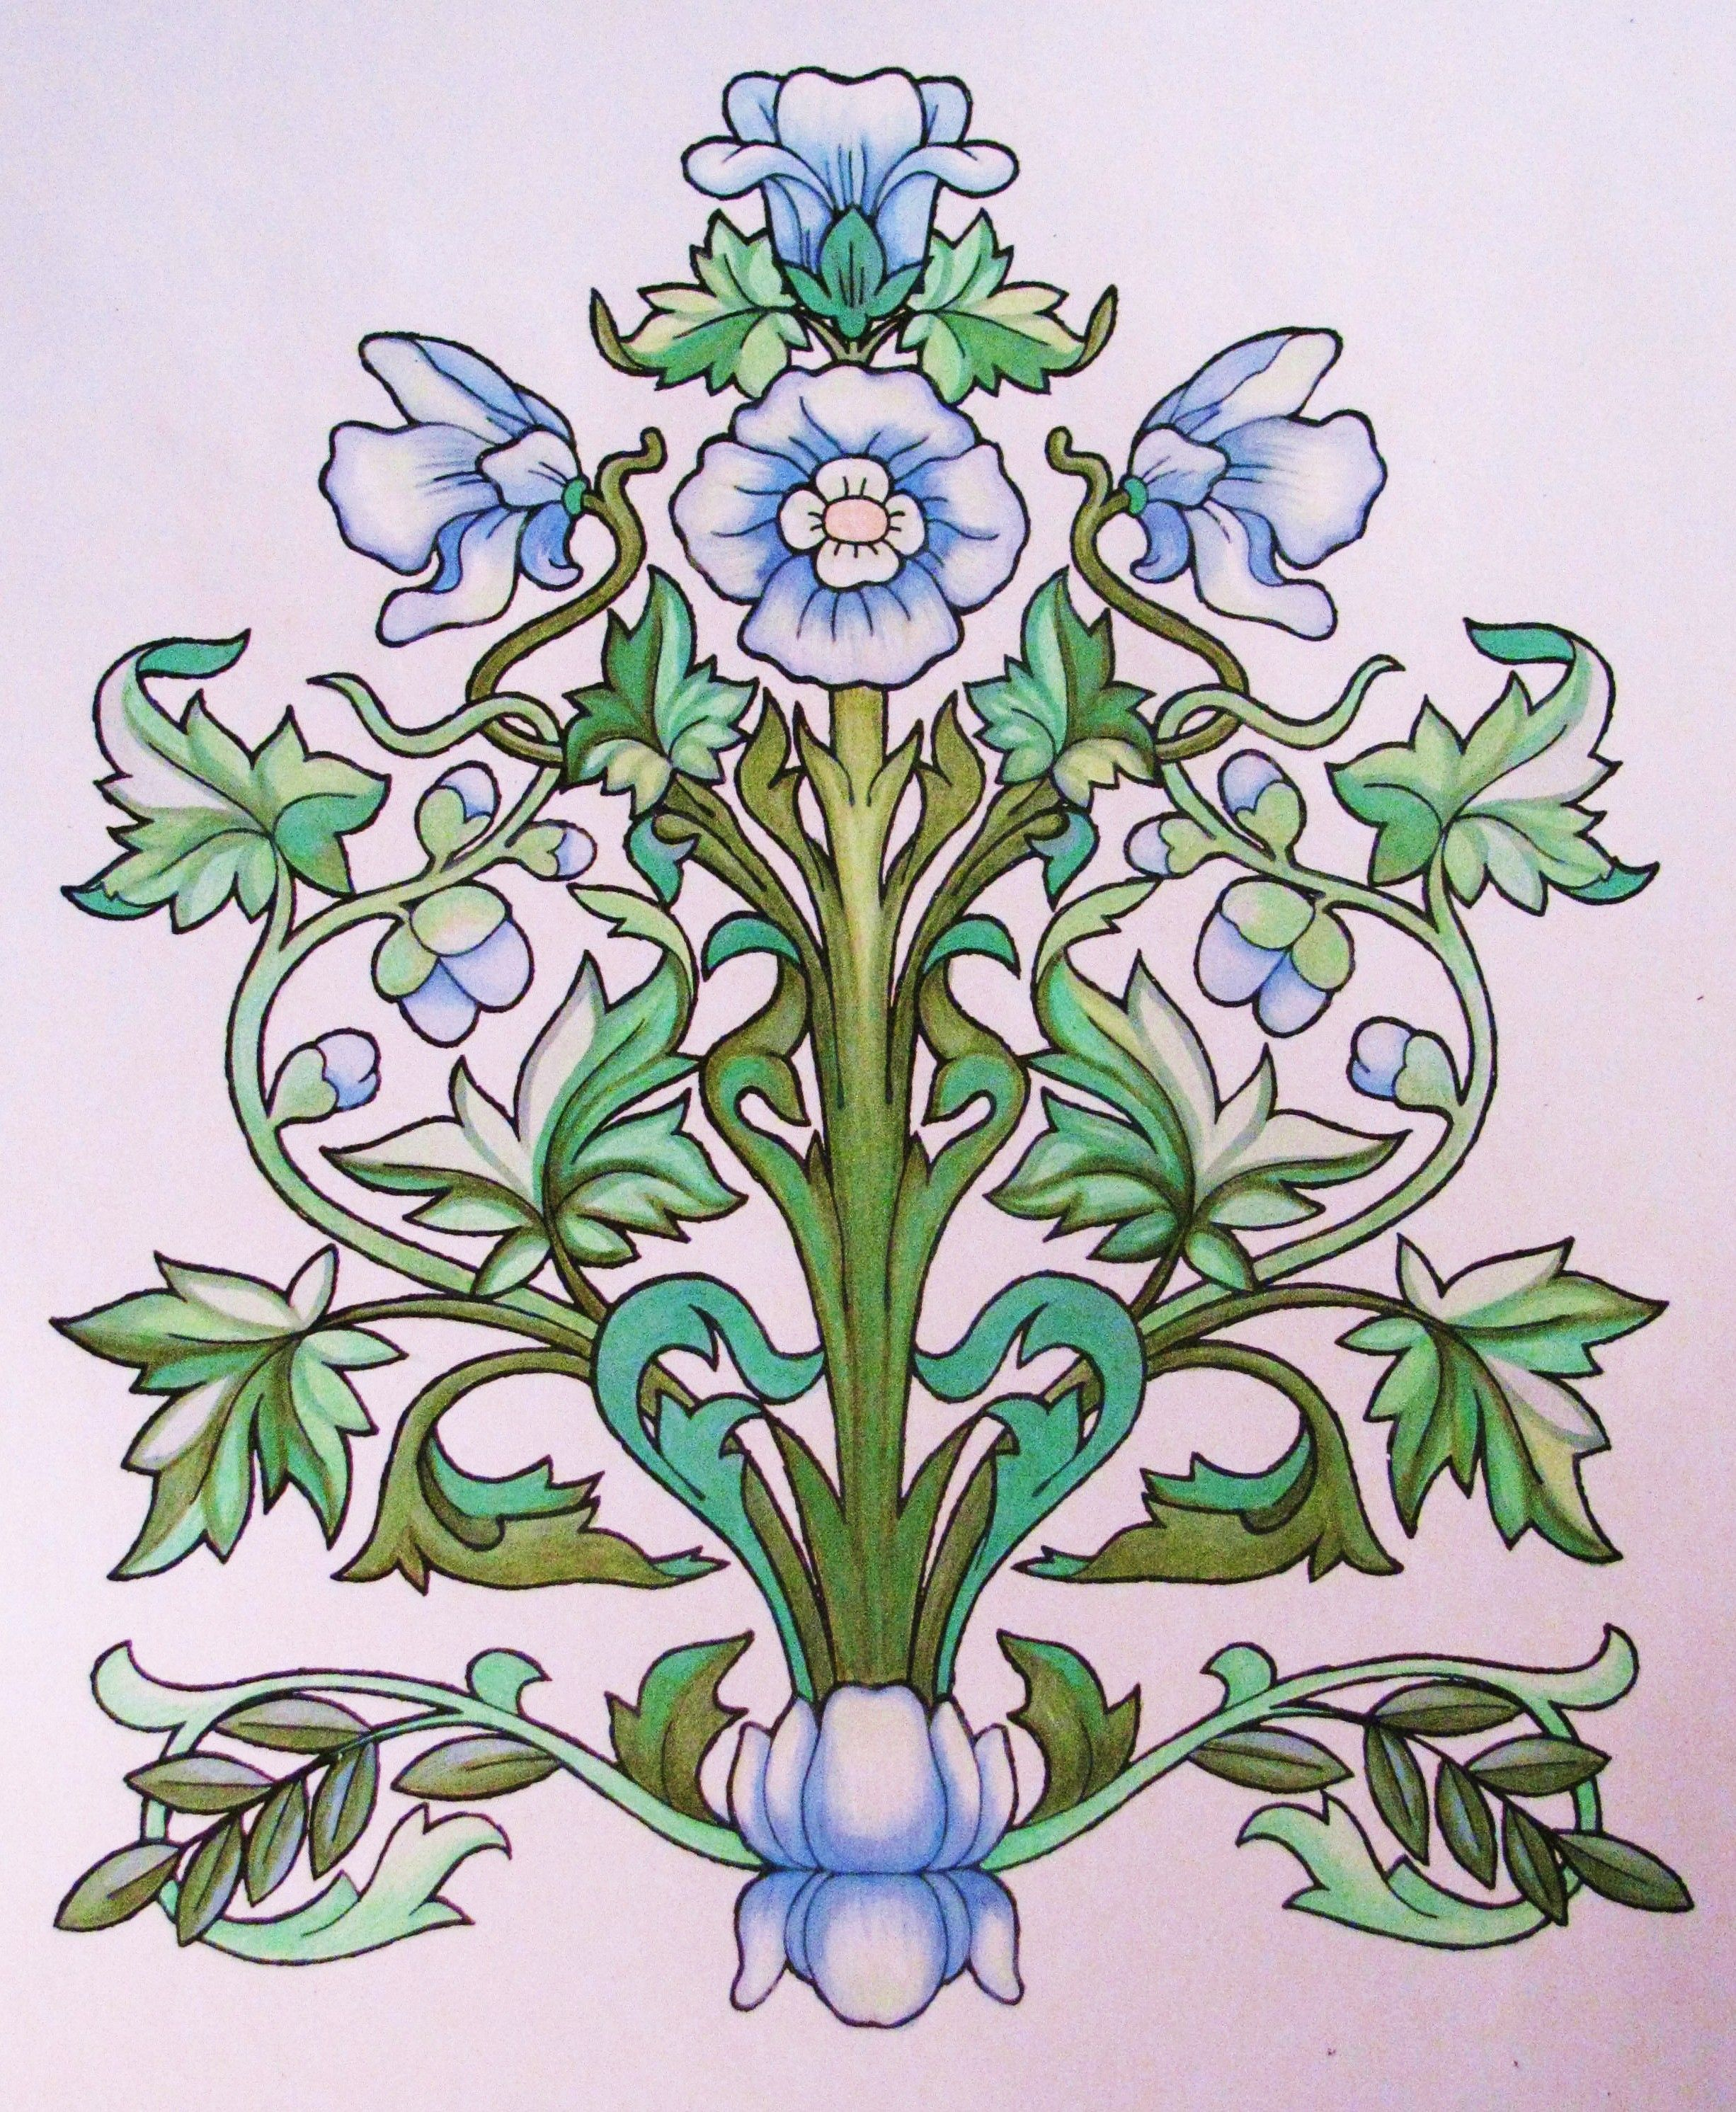 From The Art Nouveau Designs Dover Books Ilustrated By Ed Sibbet Jr